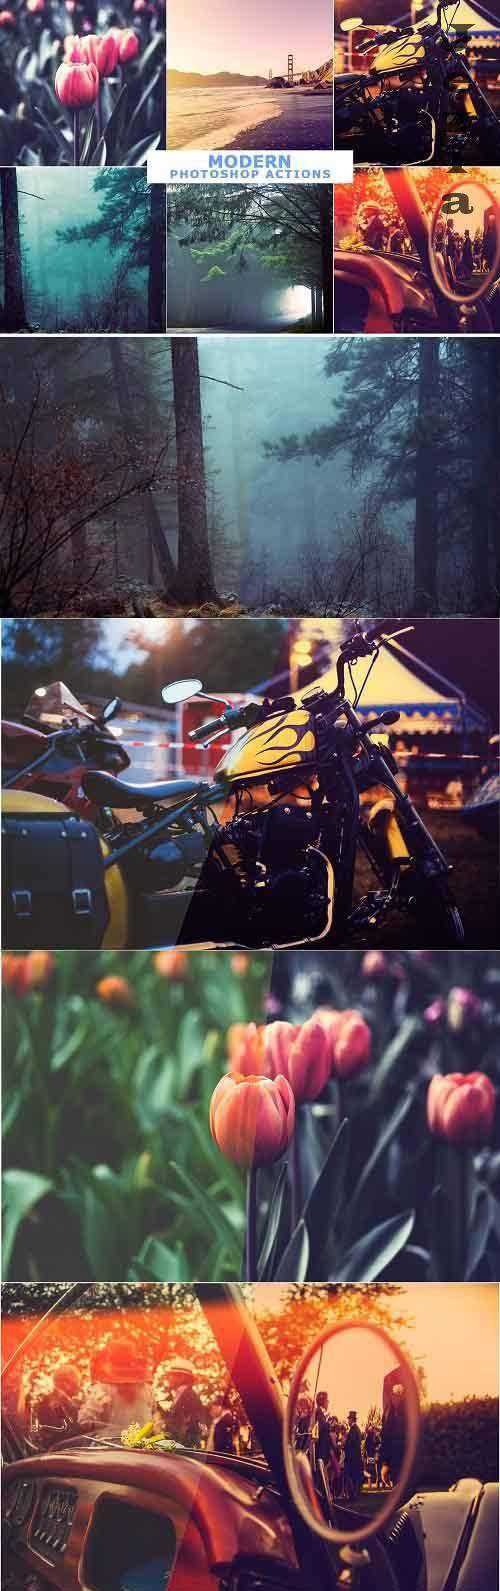 40 Modern Photoshop Actions 1 – 4642311